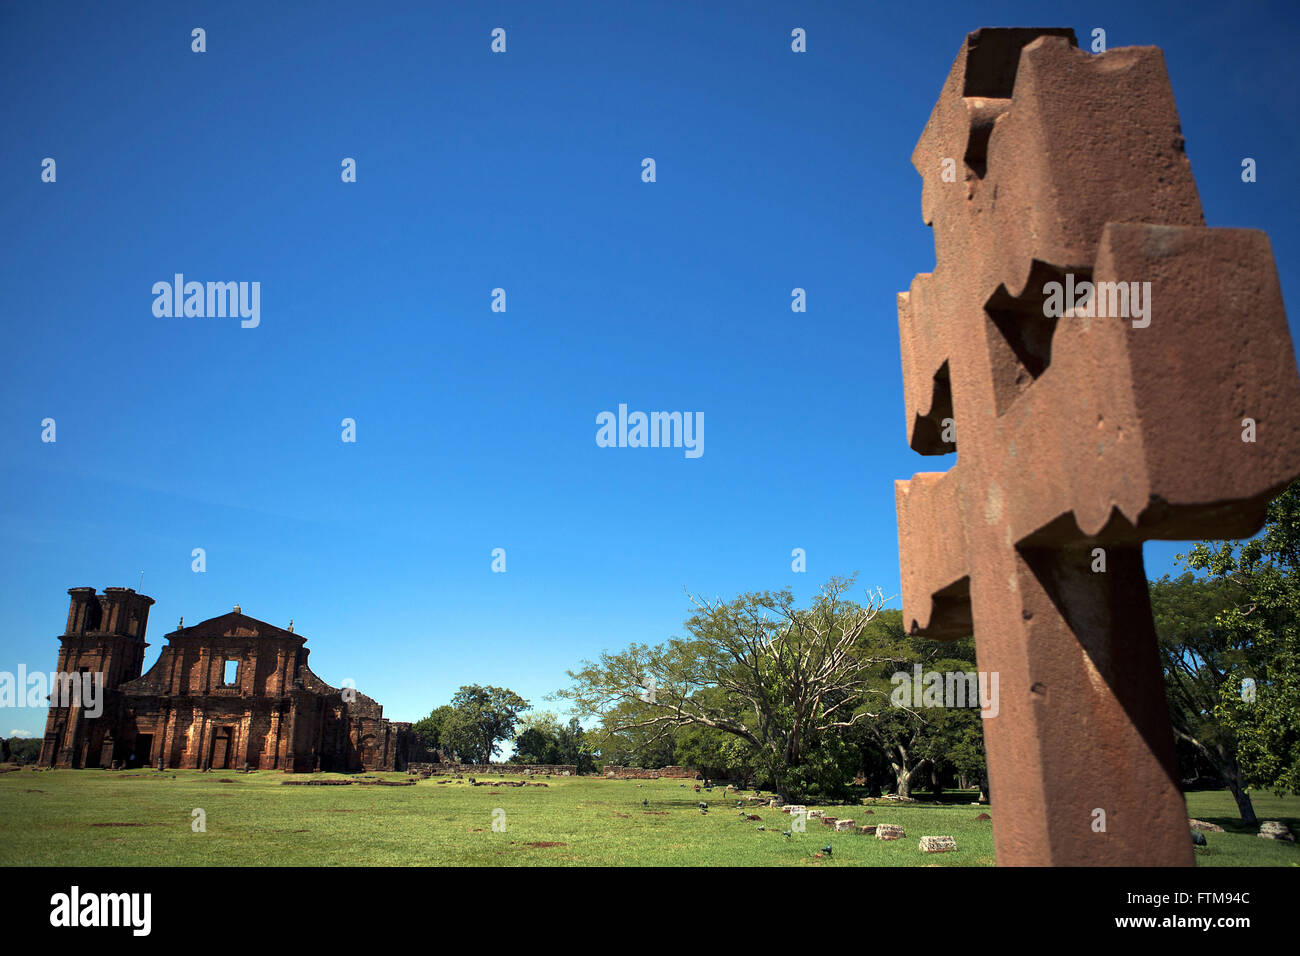 Ruins of Sao Miguel das Missions - Stock Image